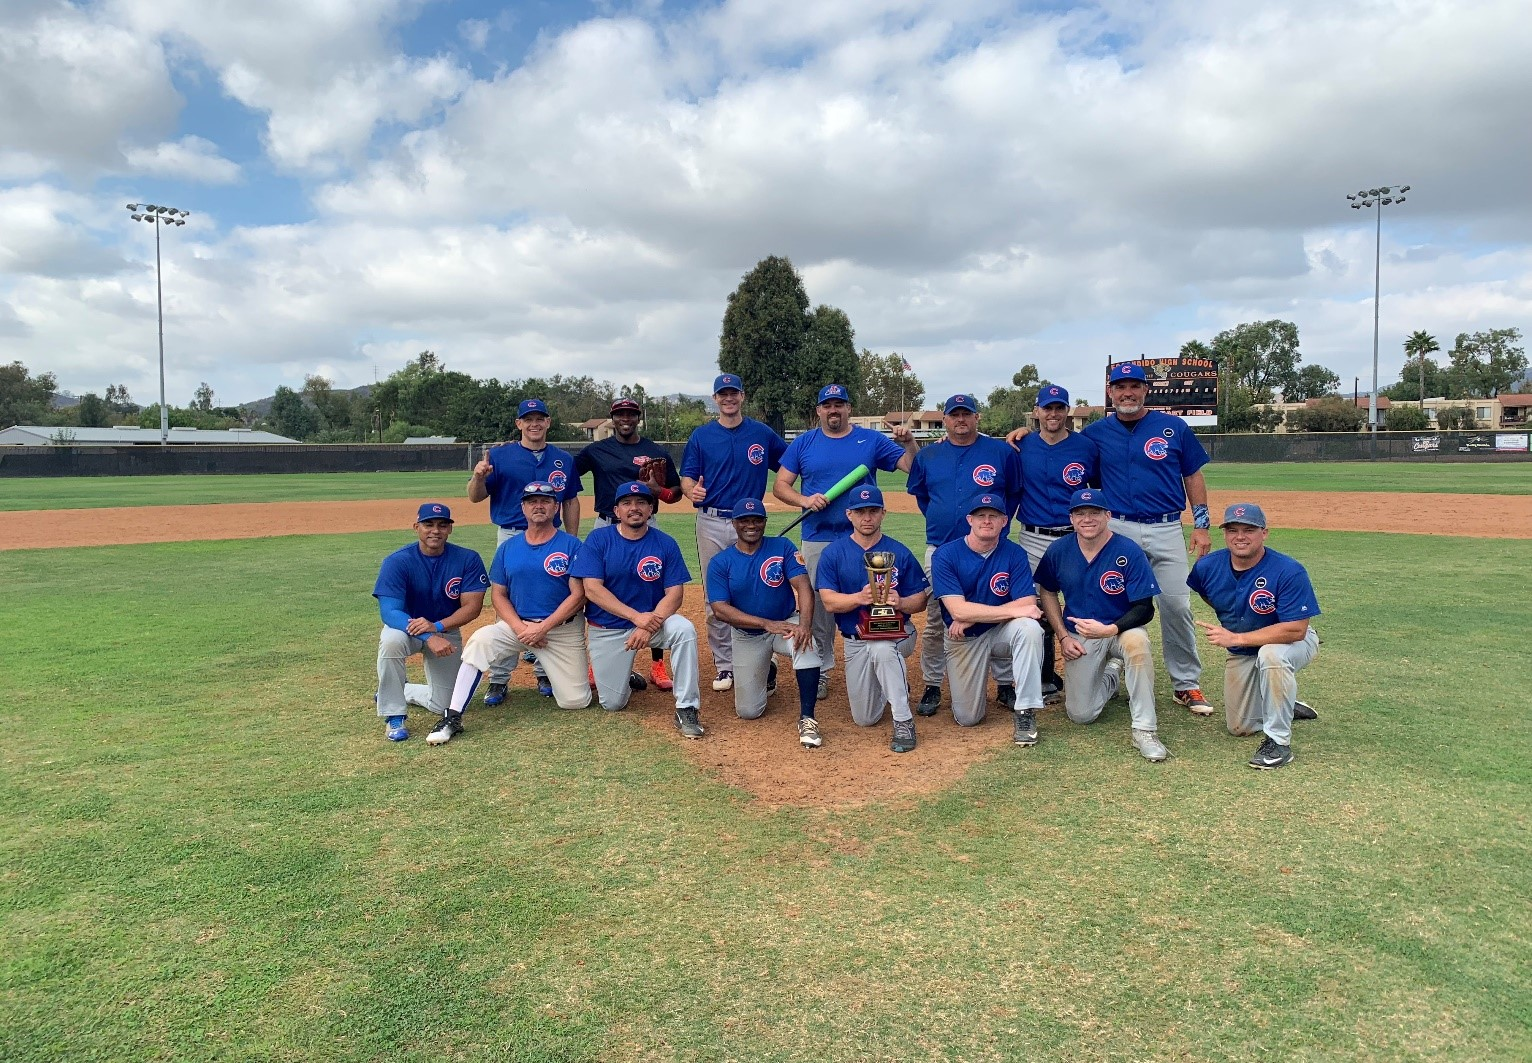 2018 MSBL 35+ SUMMER LEAGUE CHAMPIONS NORTH COUNTY CUBS